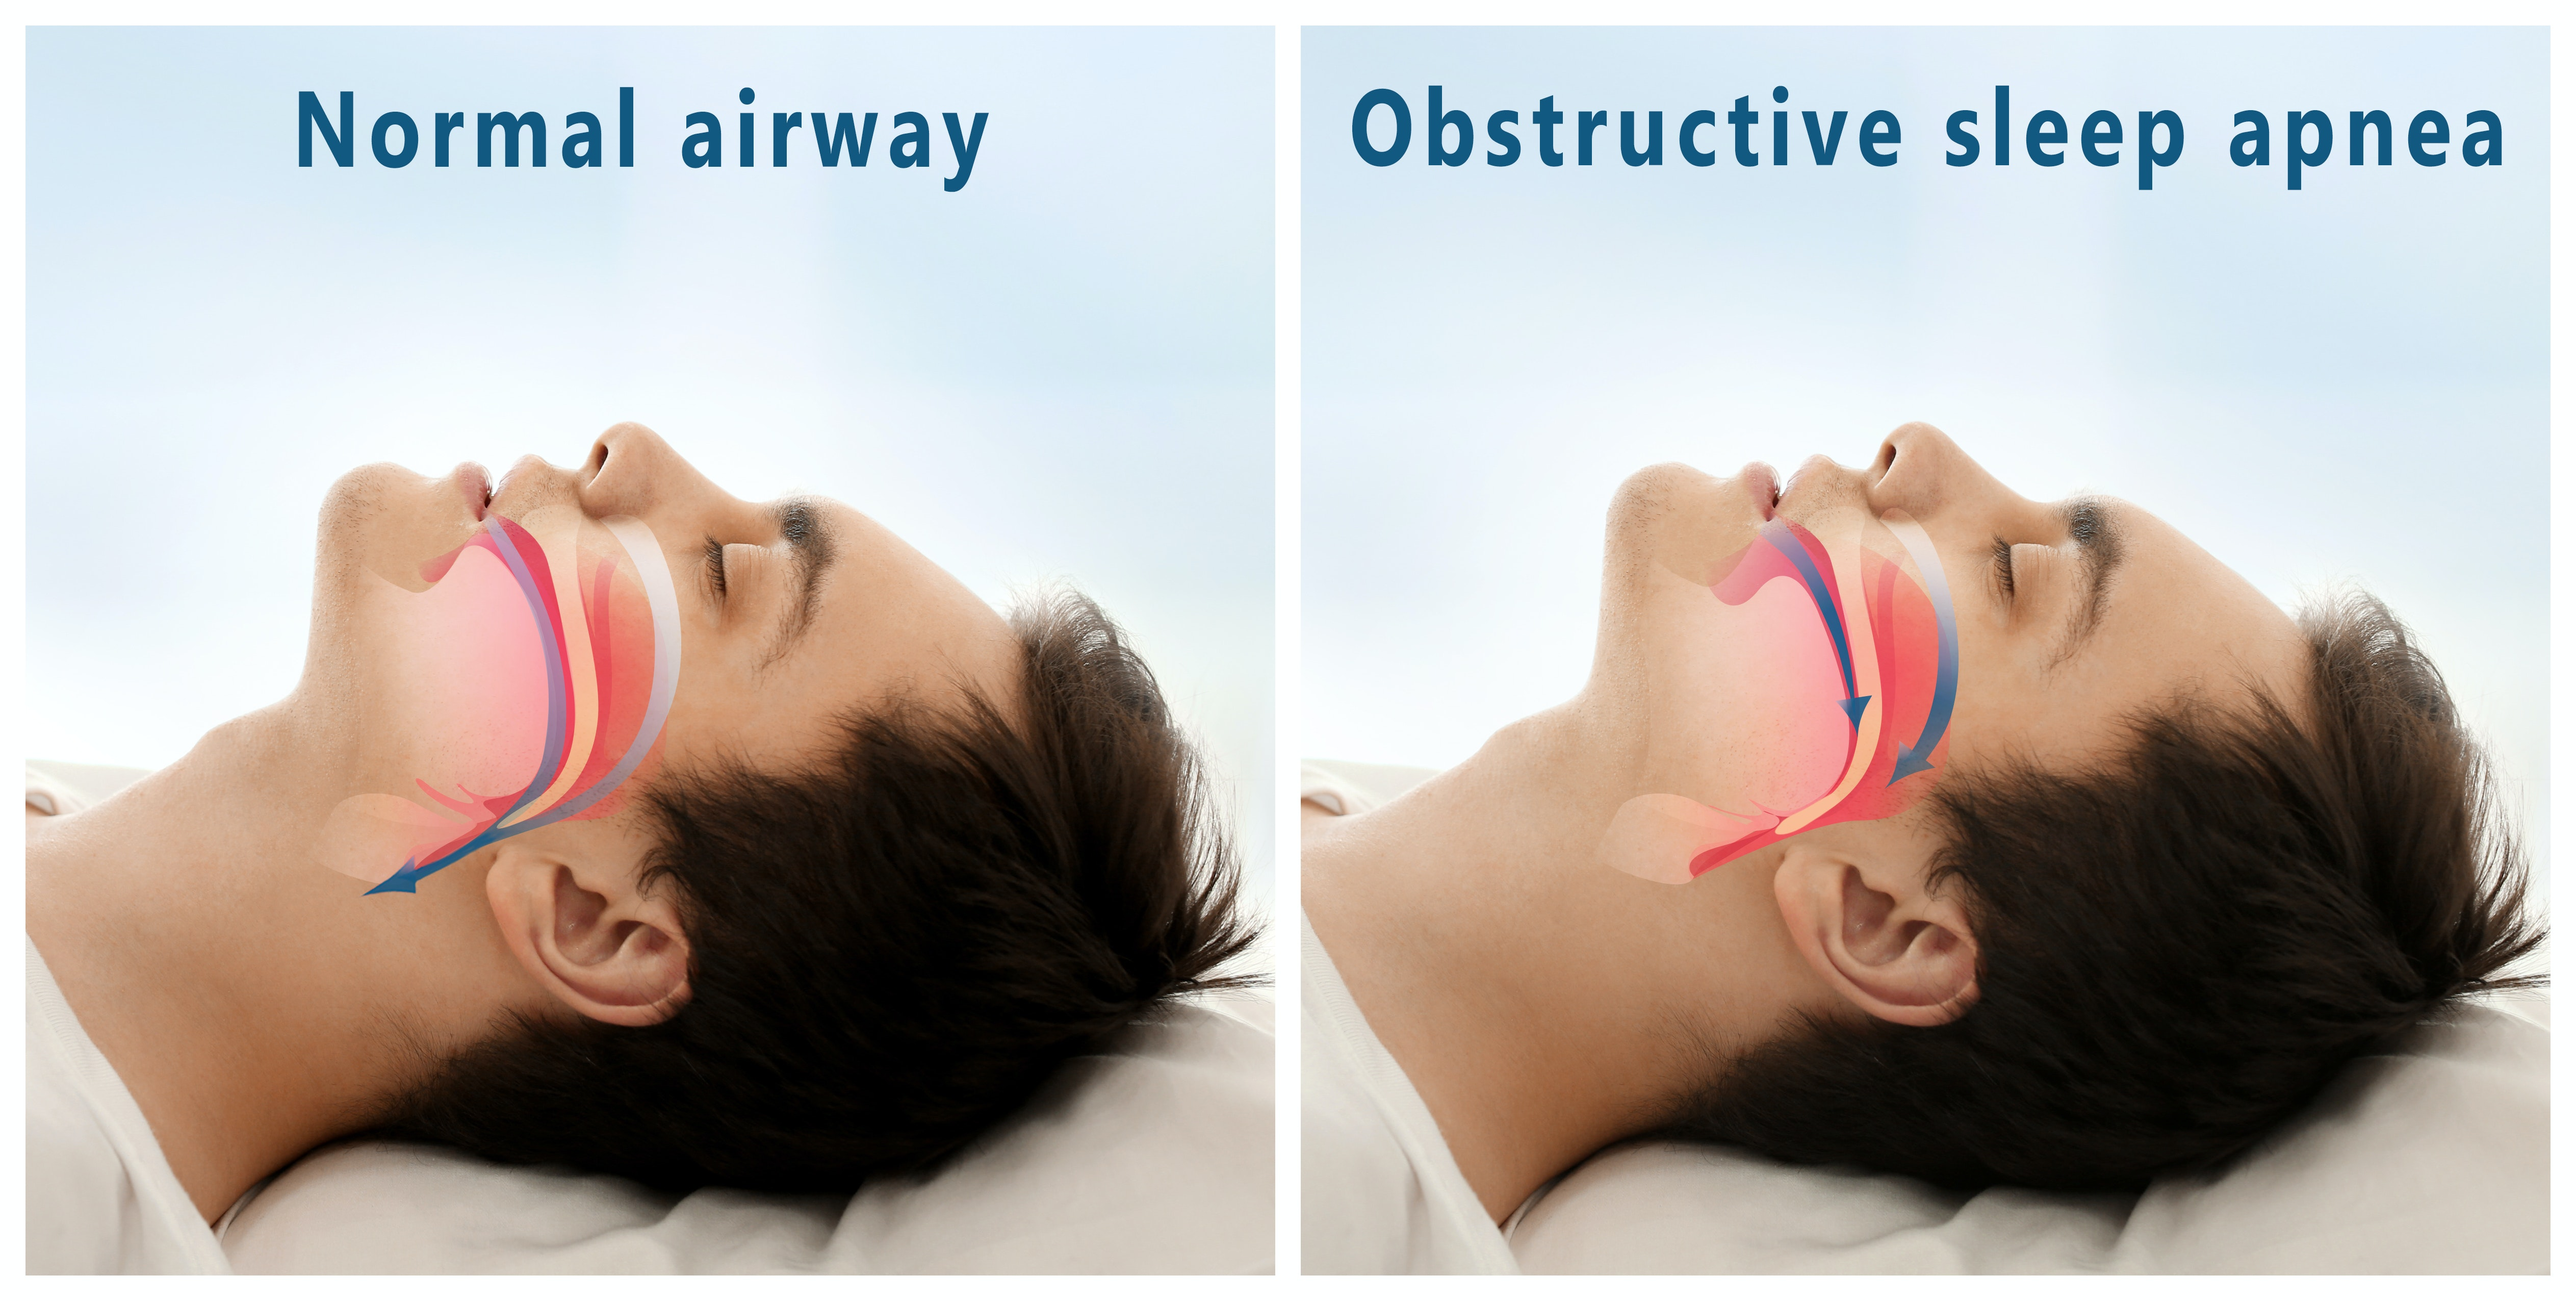 An image depicting a person suffering from obstructive sleep apnea symptoms